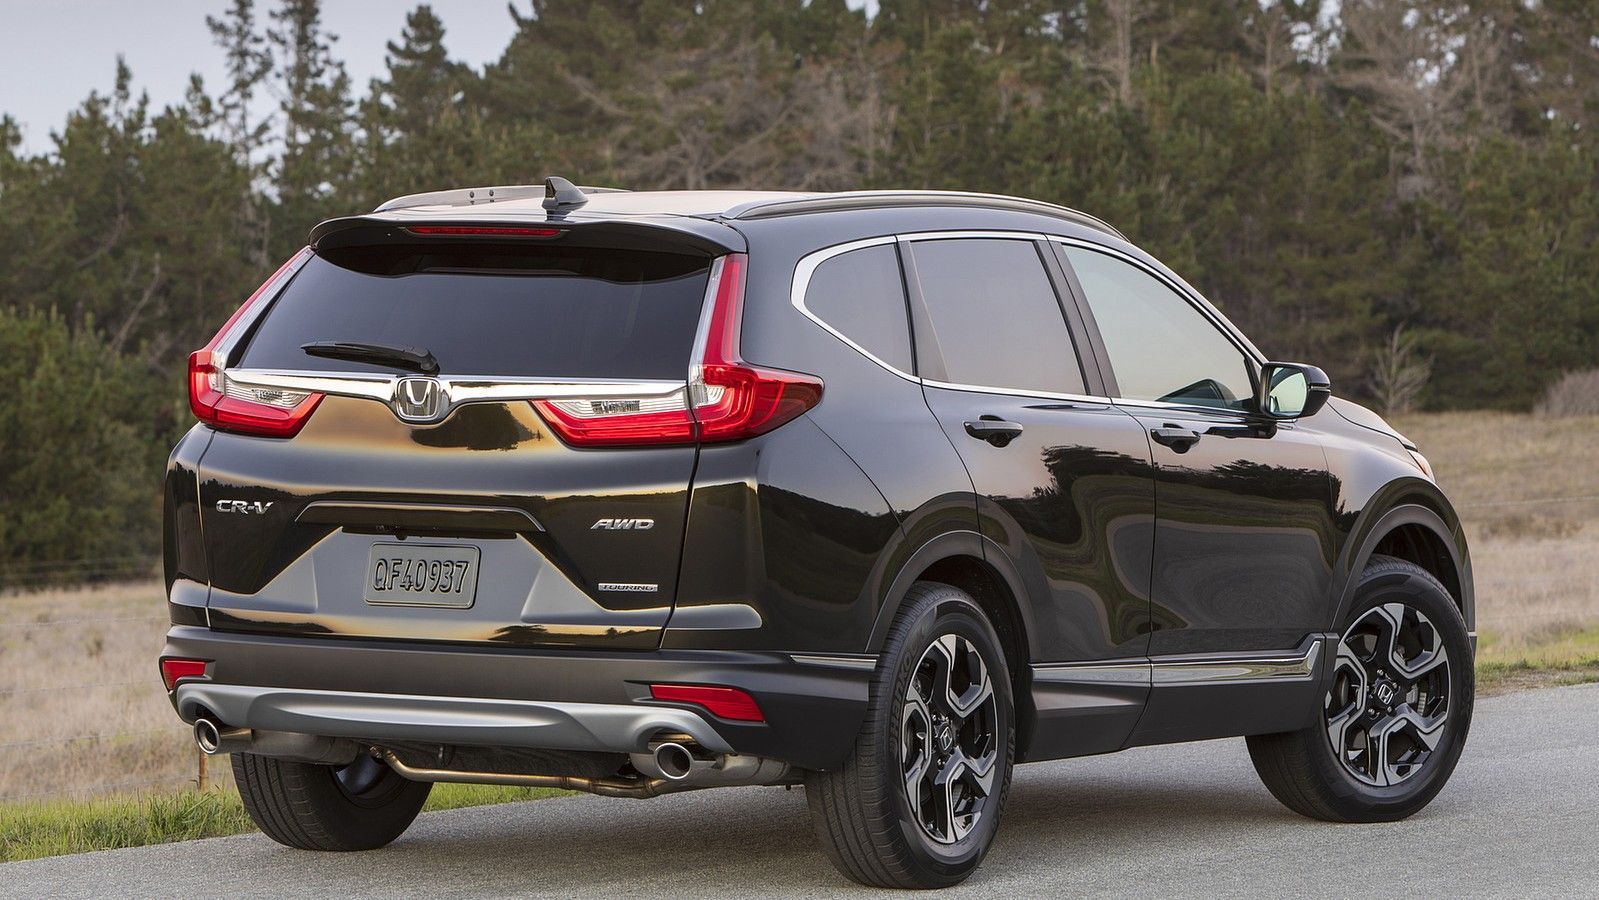 2020 honda crv rear three quarters